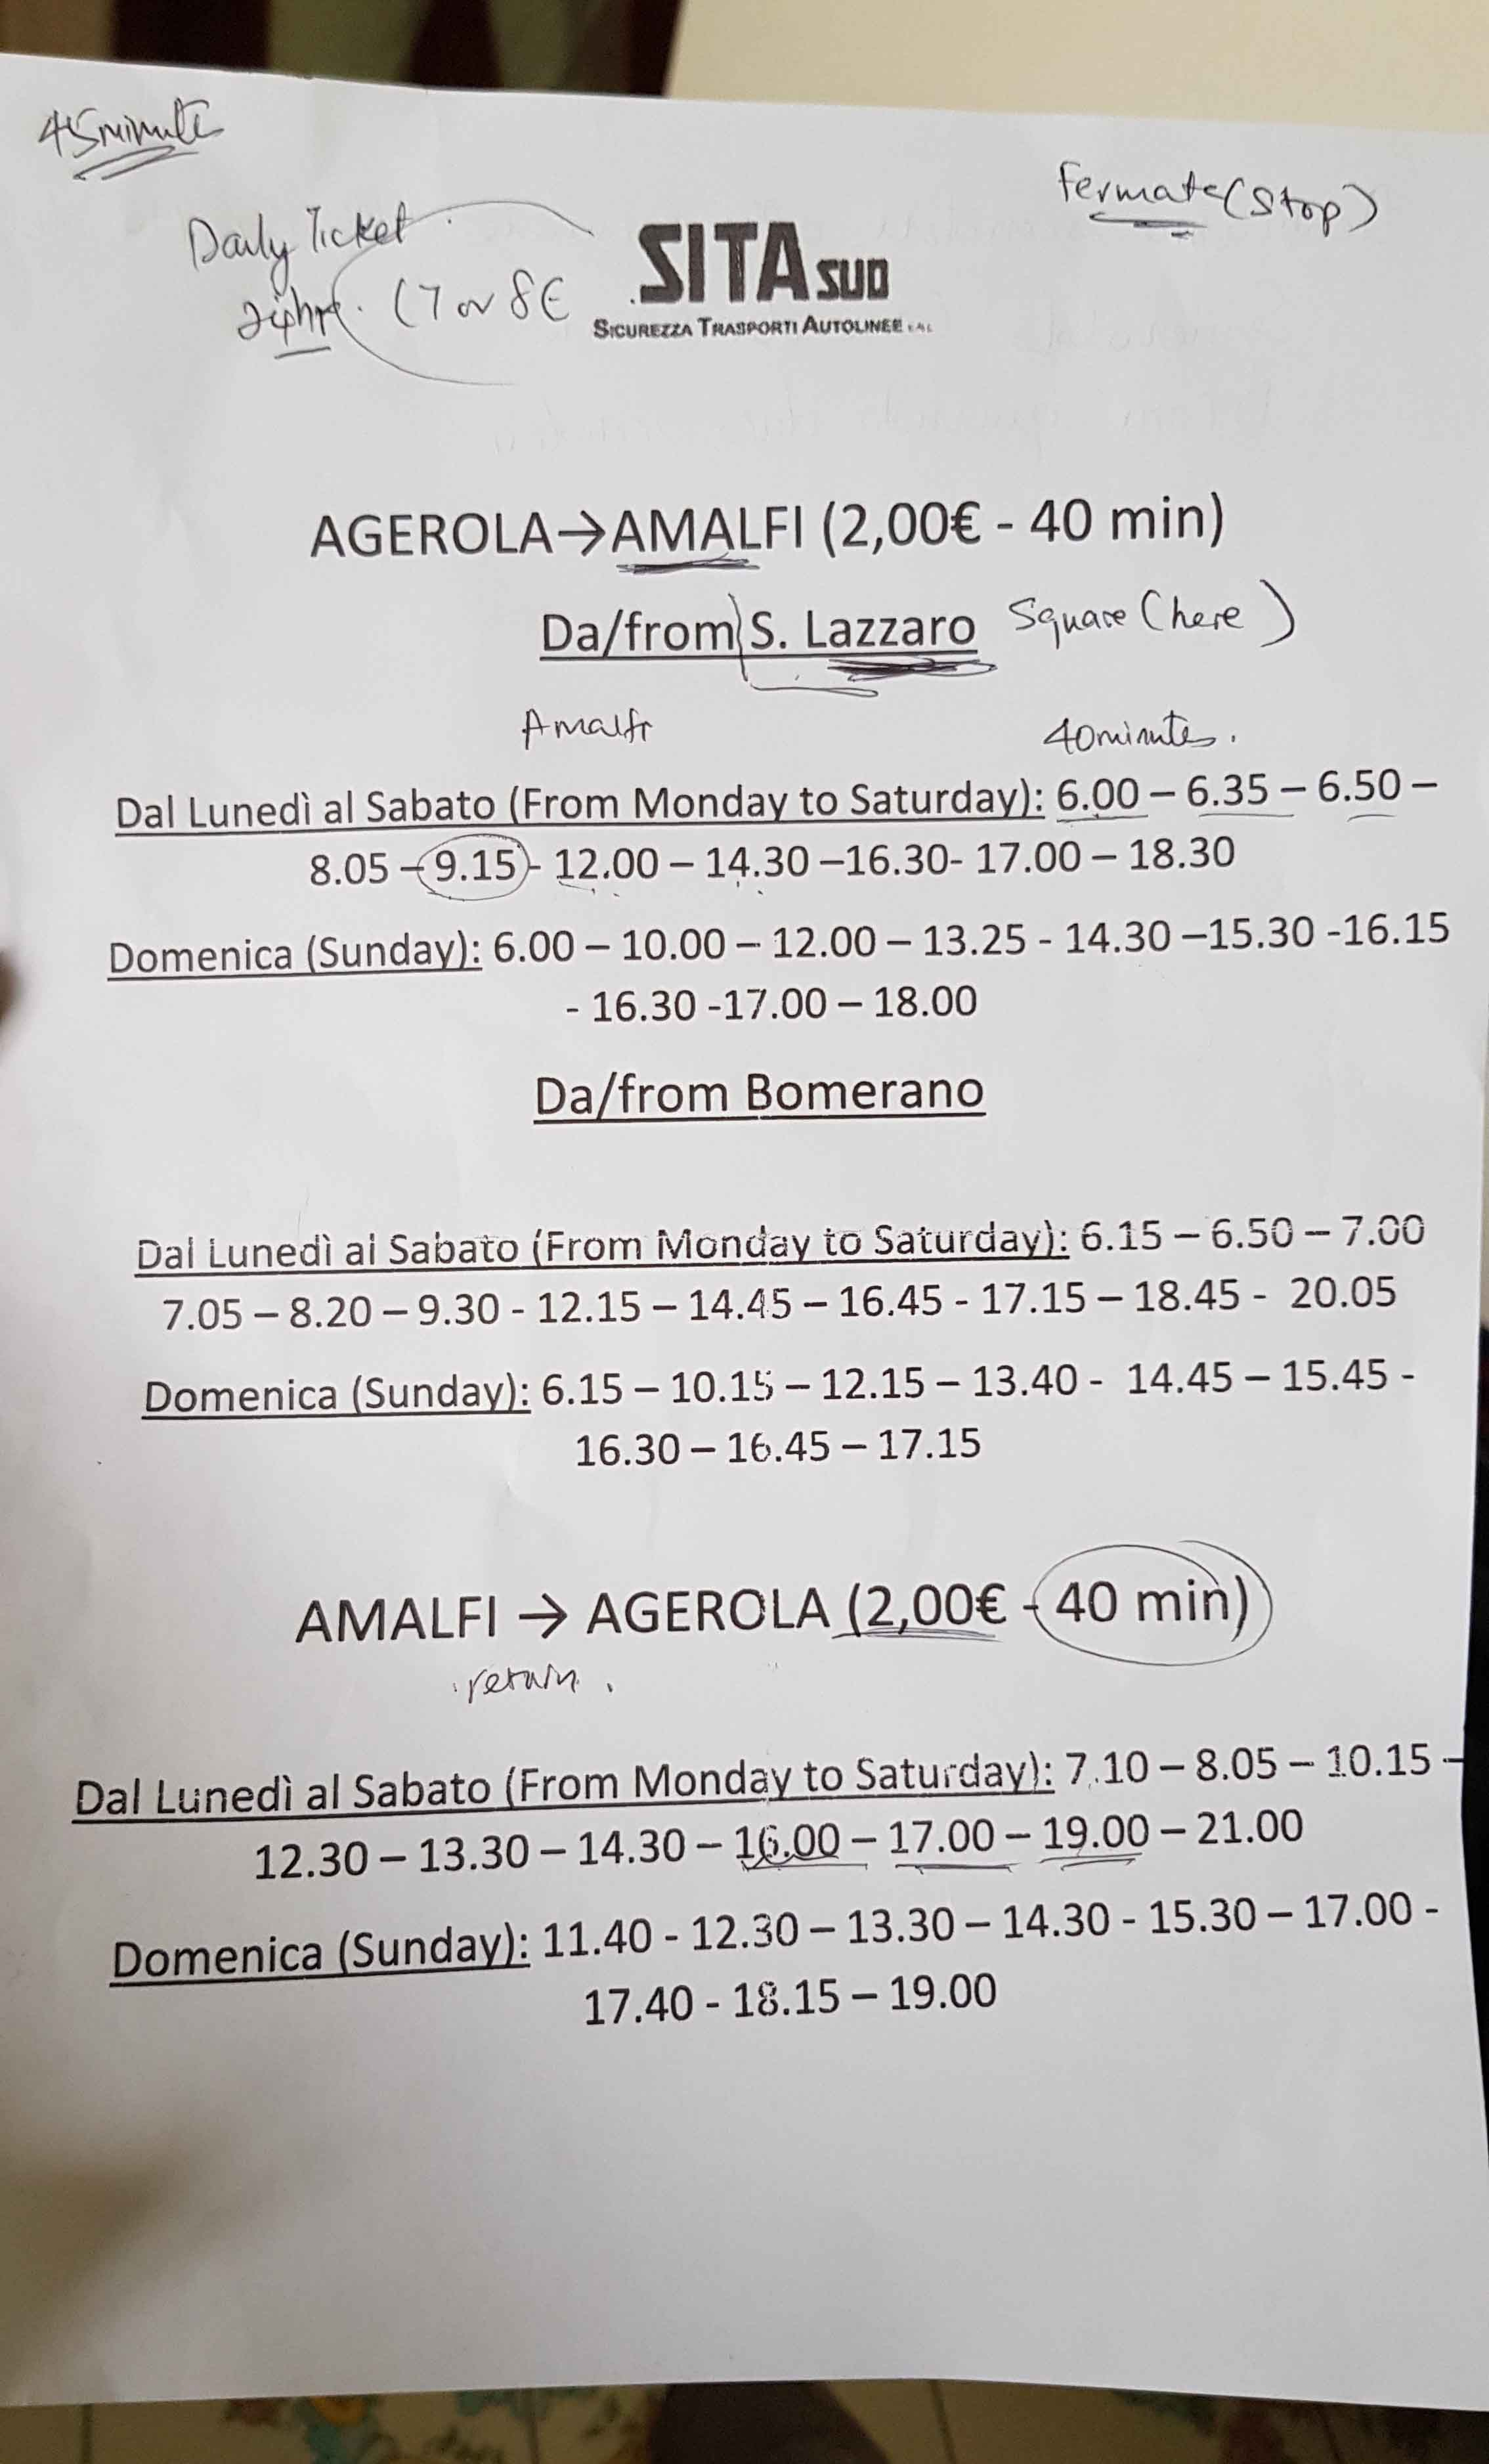 Bus schedule between San Lazzaro and Amalfi town